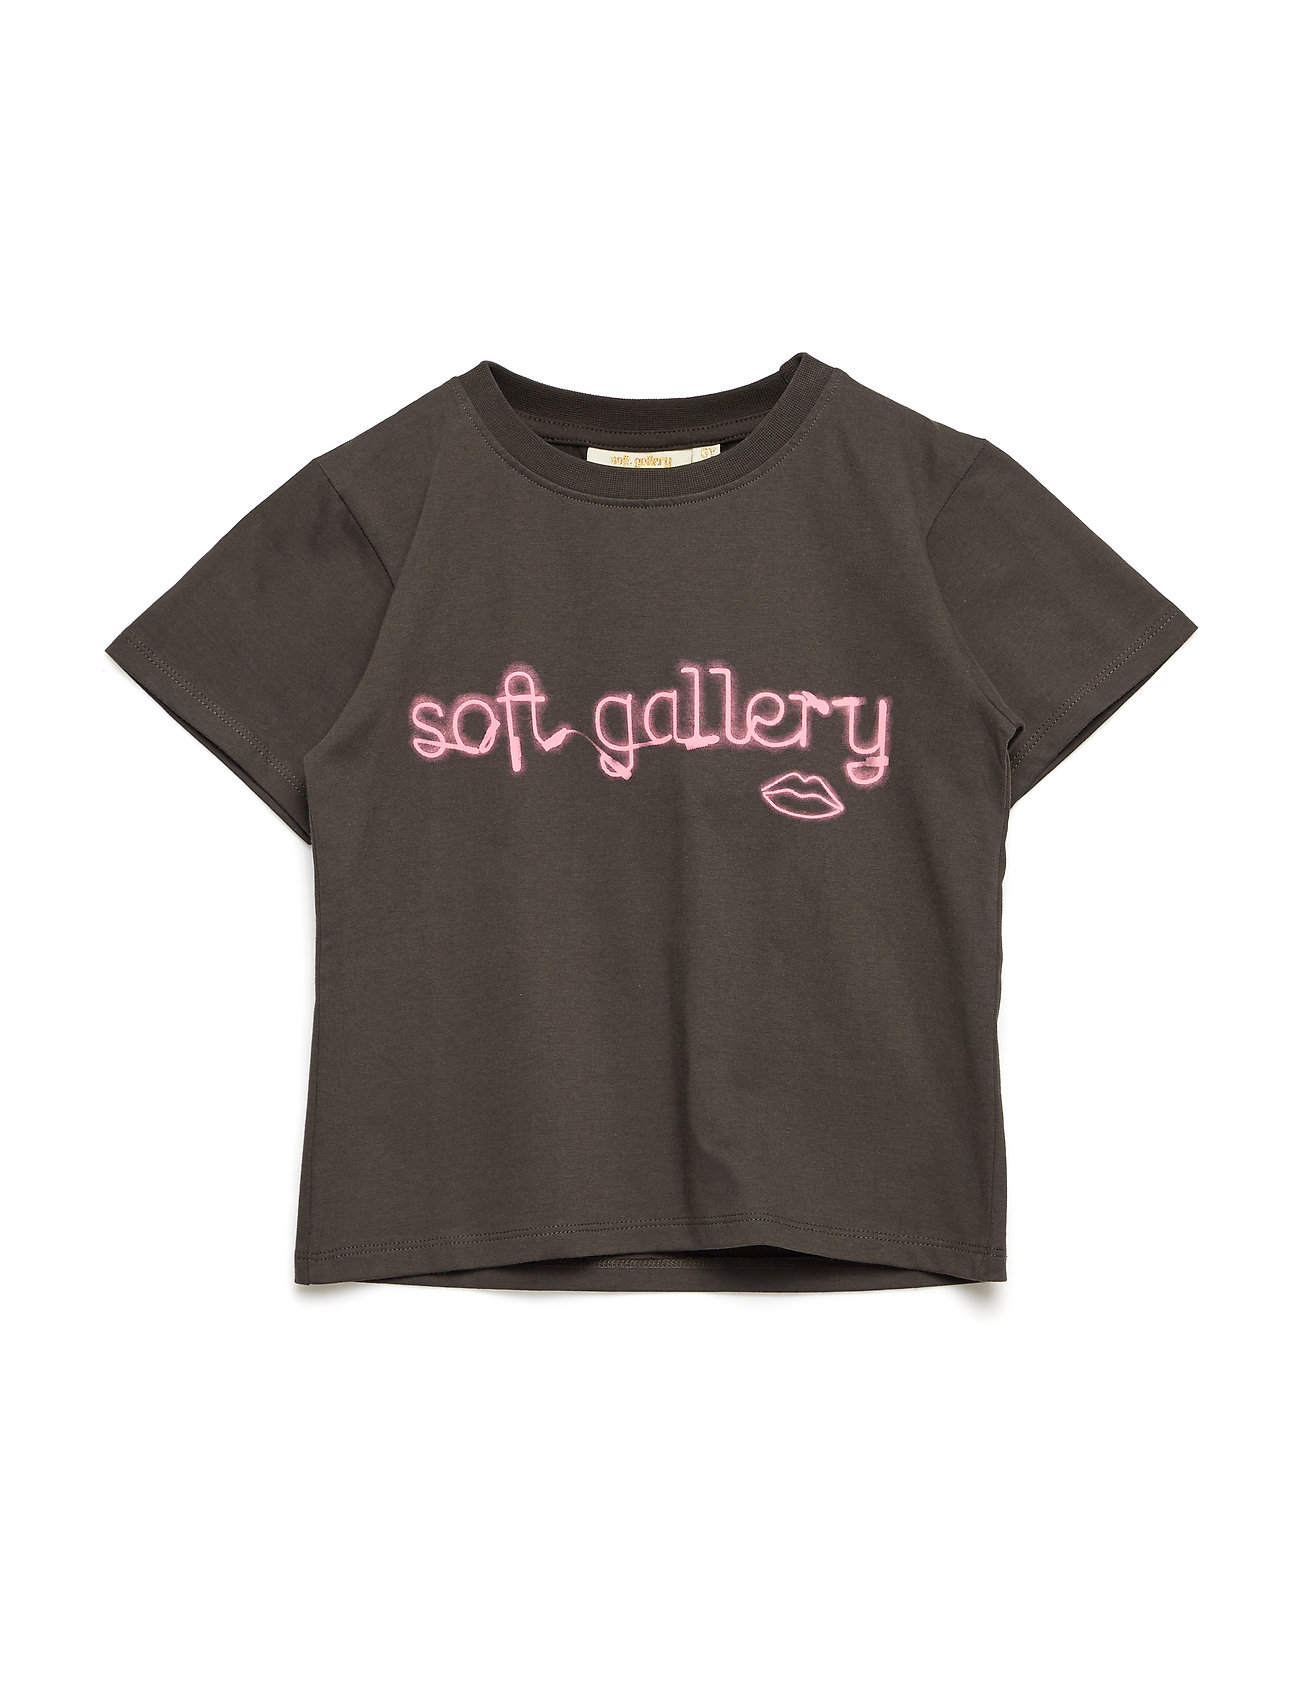 Soft Gallery Dominique T-shirt - PEAT, NEON LIPS